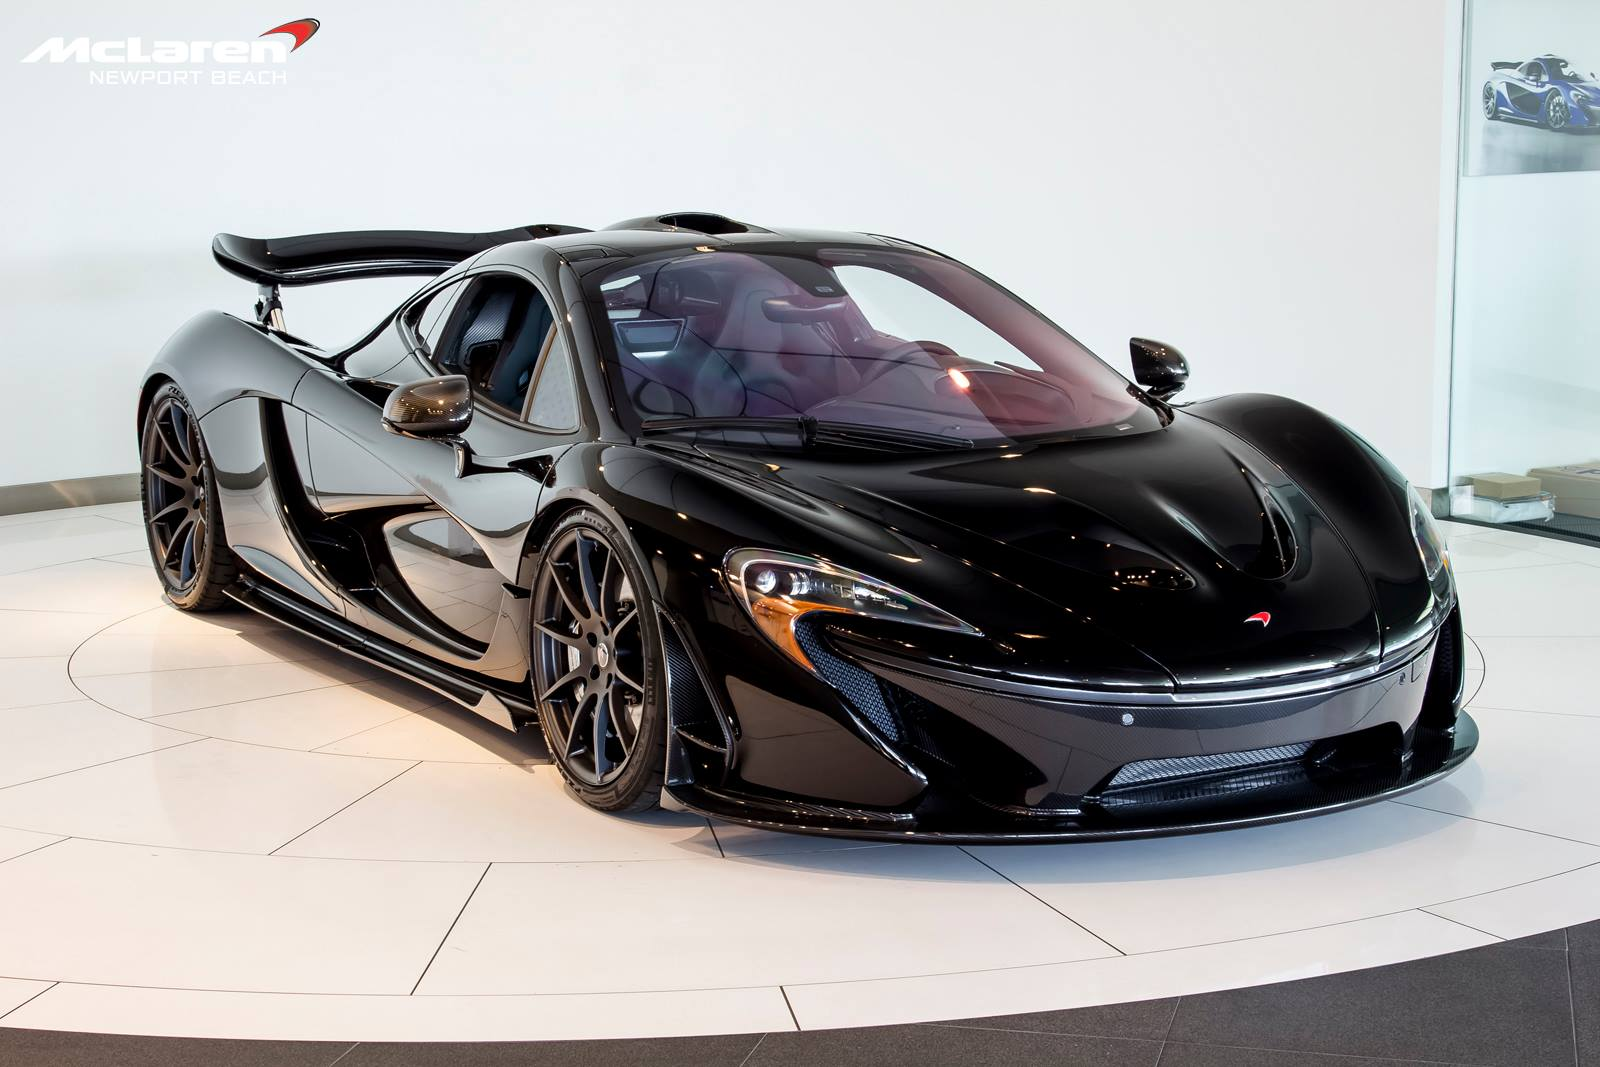 Stunning Fire Black Mclaren P1 Delivered